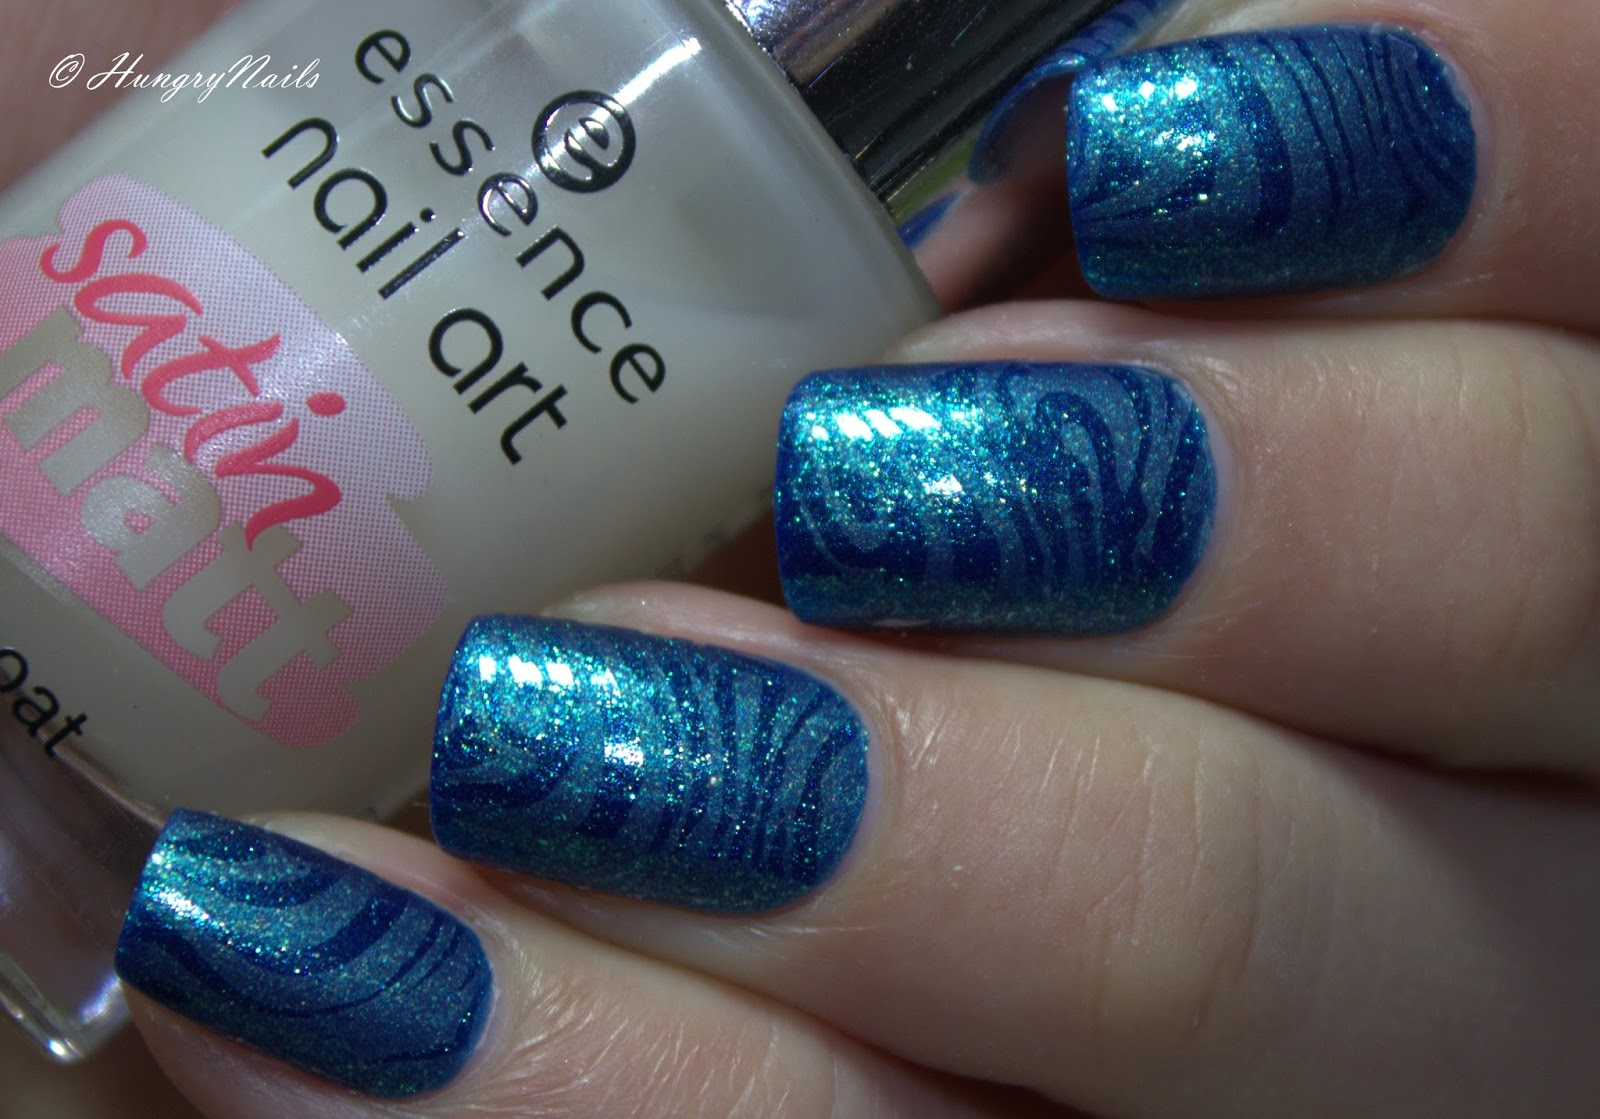 http://hungrynails.blogspot.de/2015/03/blue-friday-spezial-opi-skys-my-limit.html